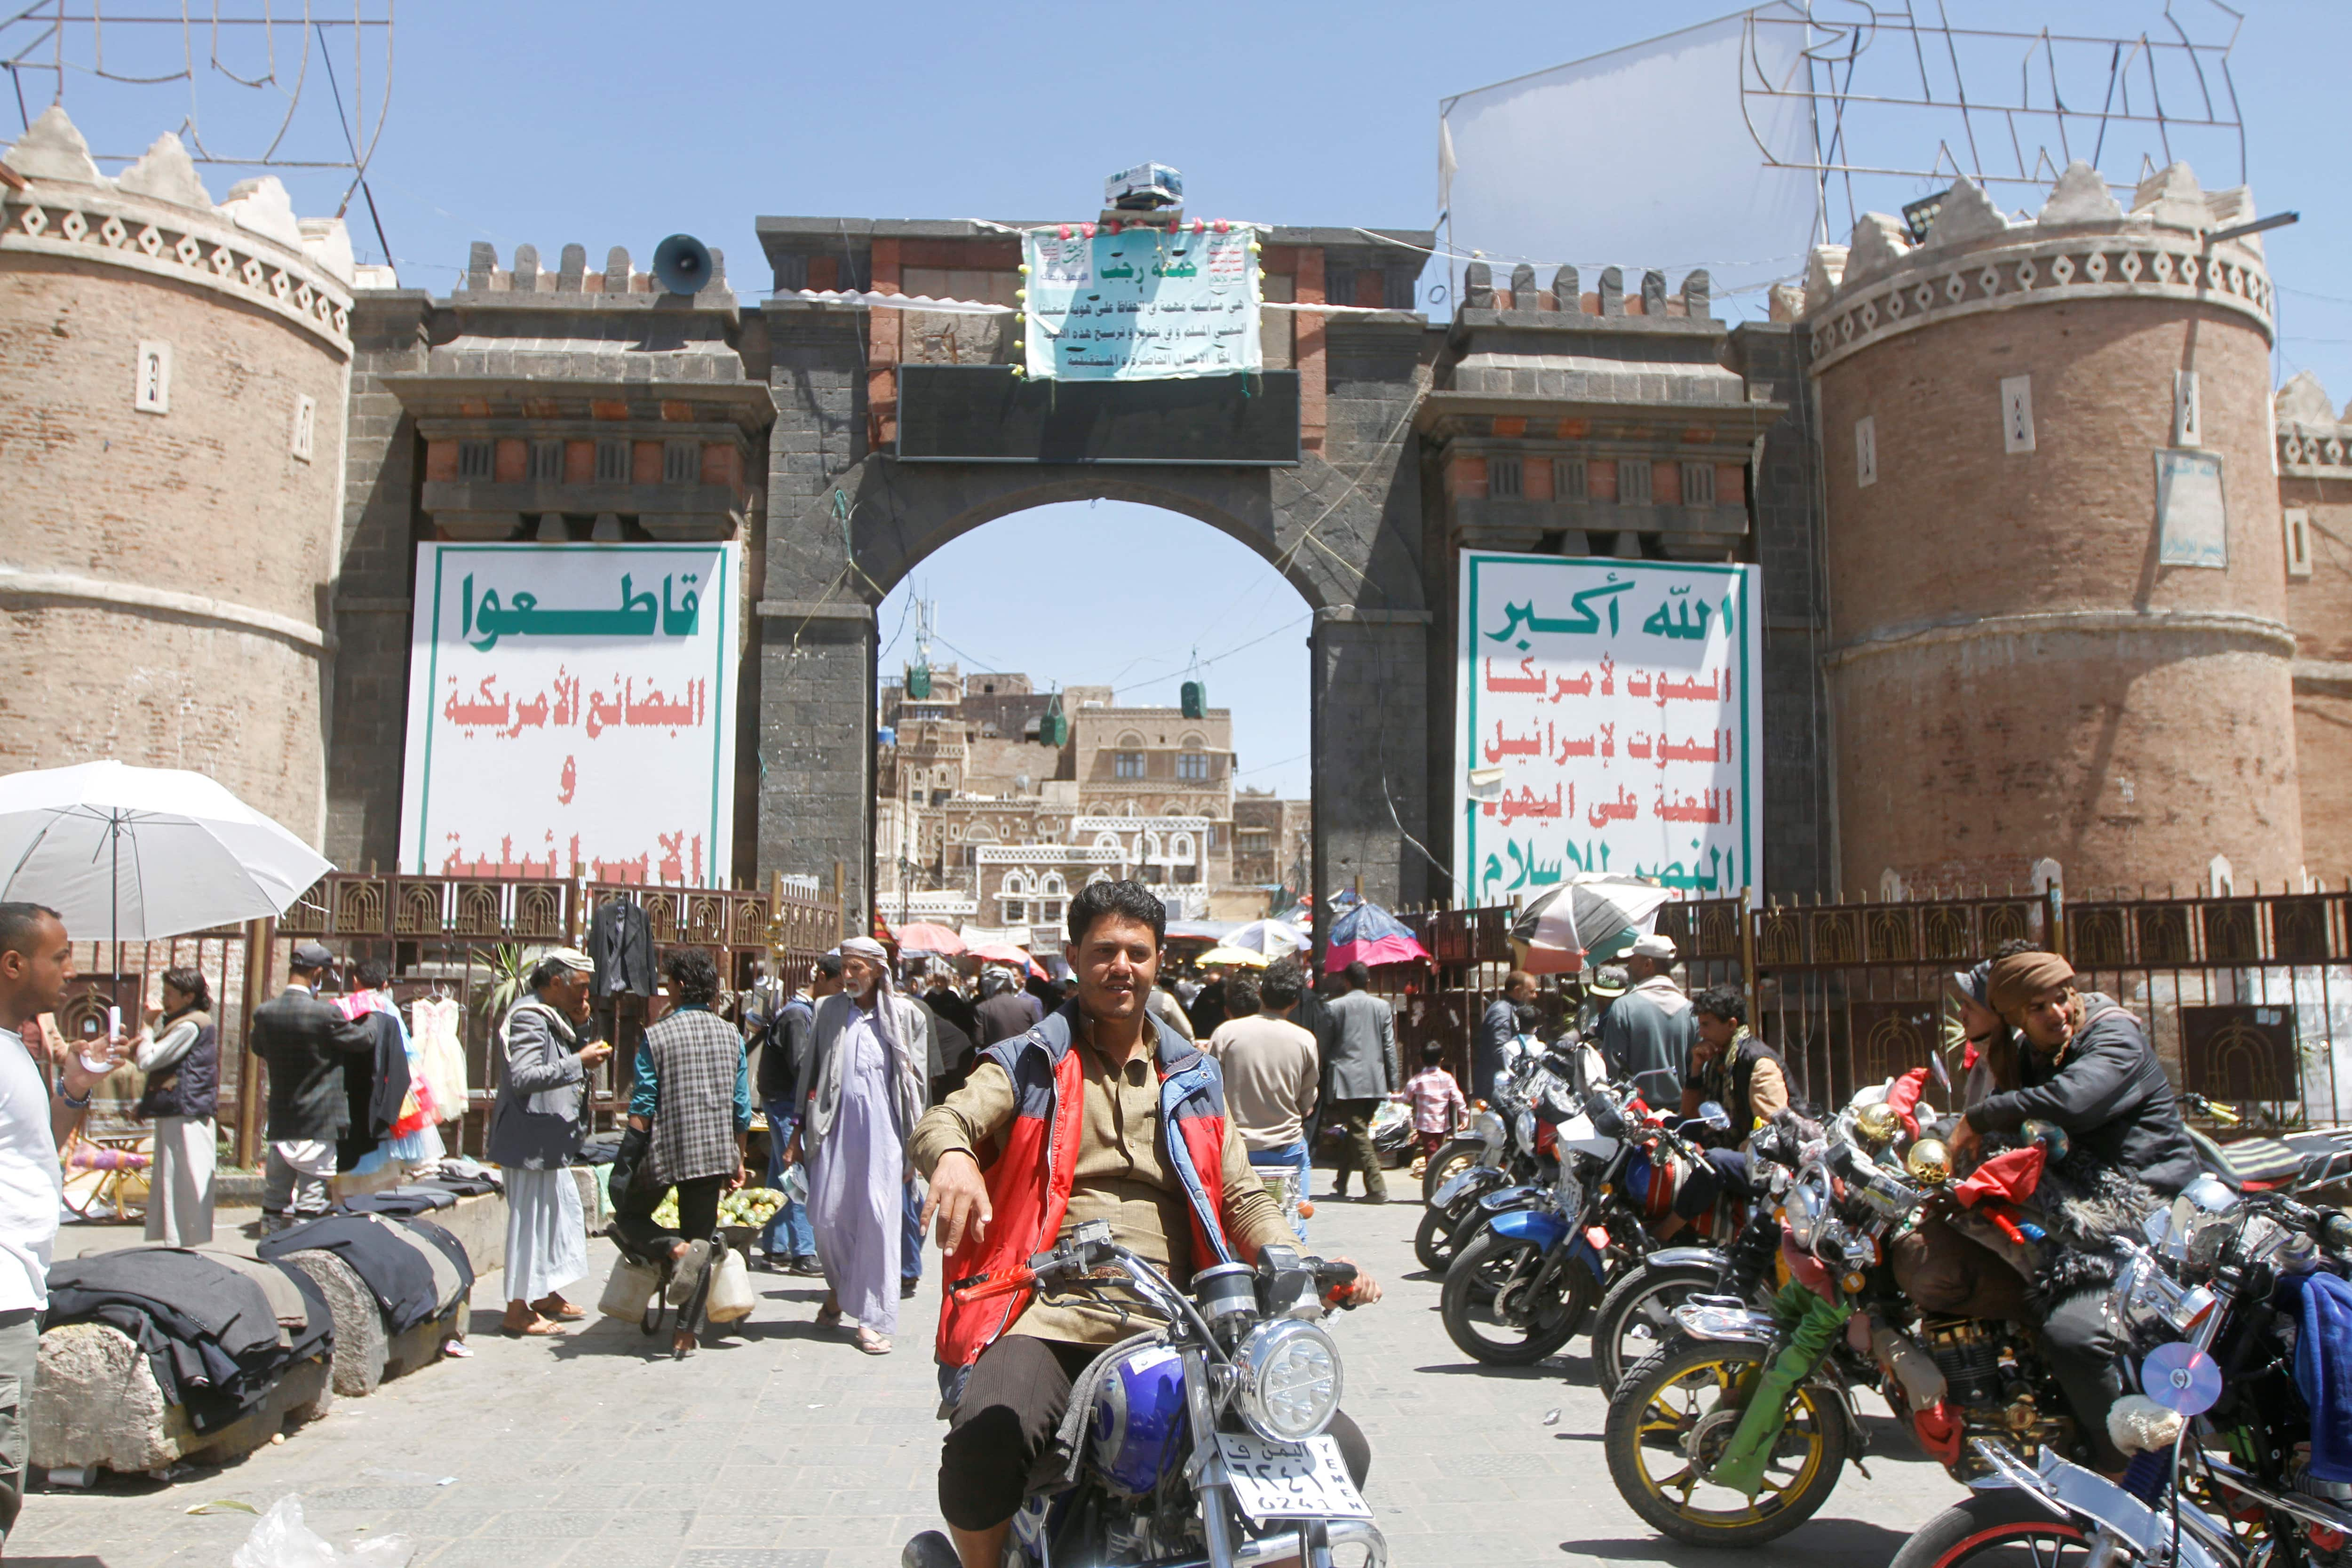 People shop at a market in the old quarter of Sanaa, Yemen (Photo: Reuters)